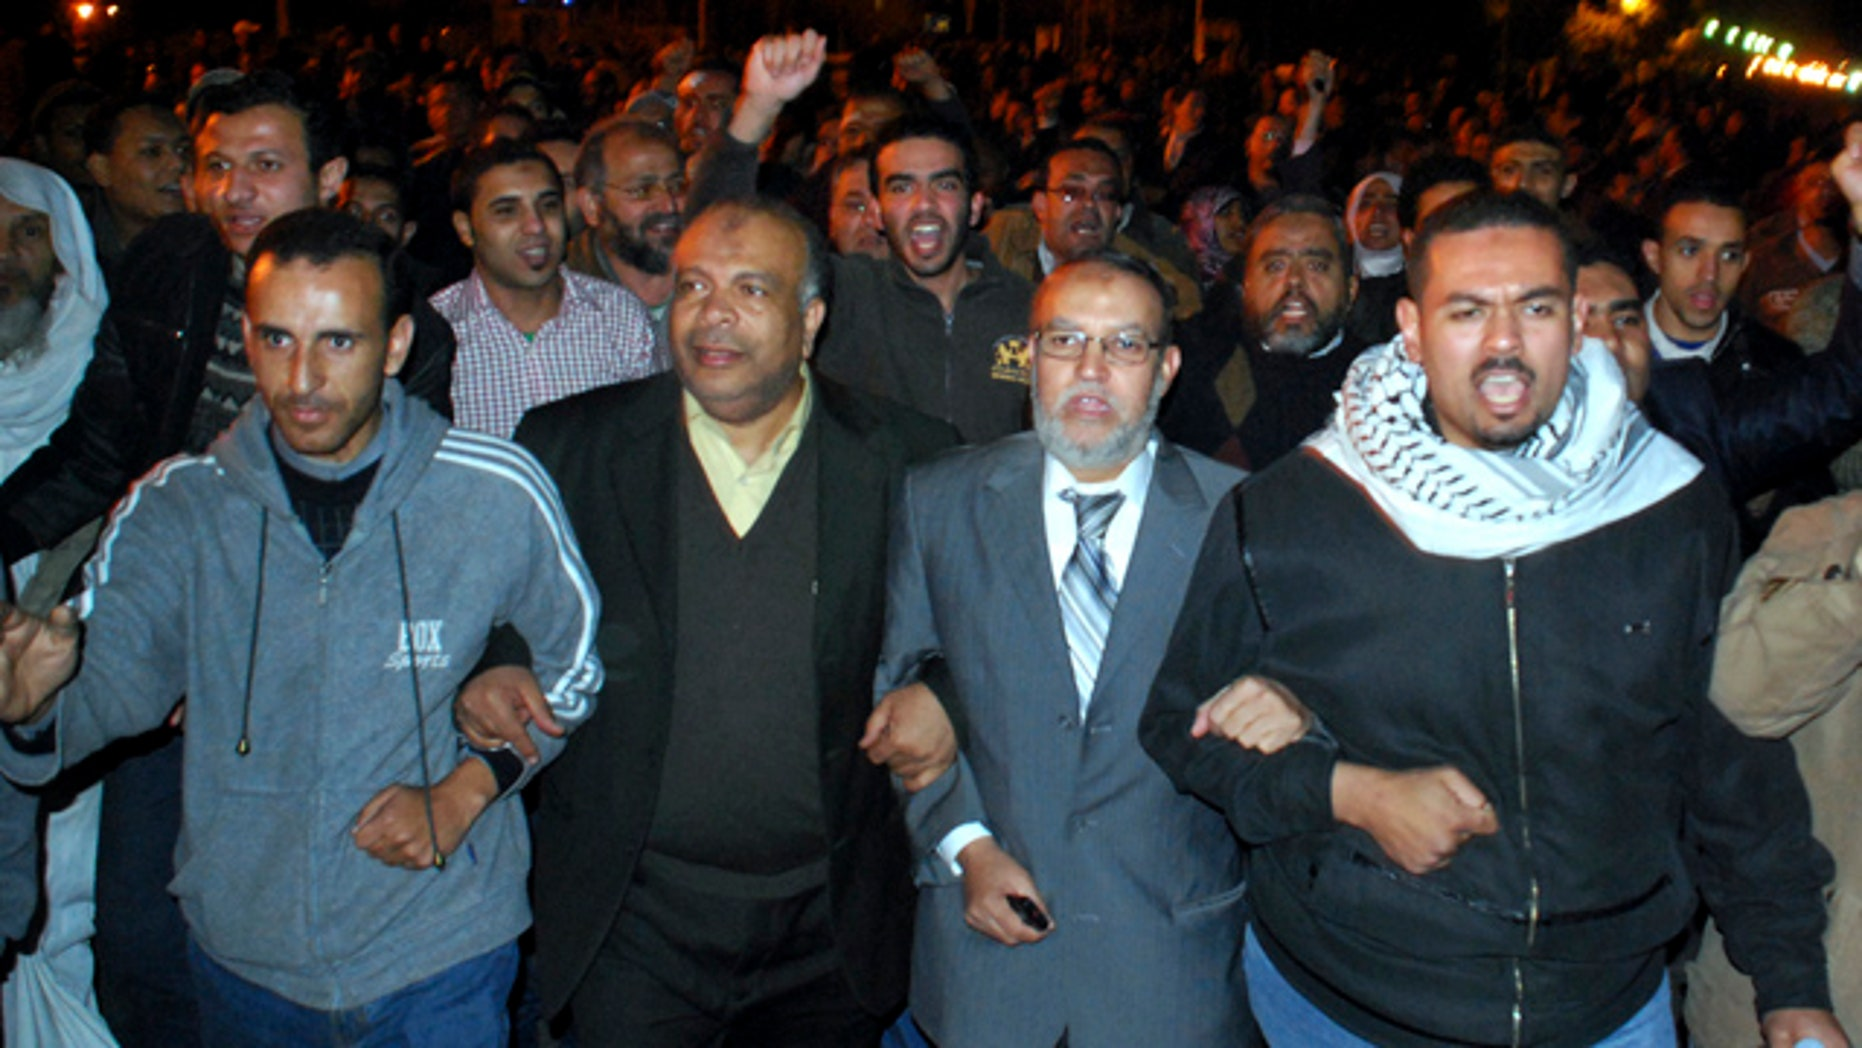 Jan. 30, 2011: Egyptian Brotherhood seniors Essam el-Erian, centre right, and Saad el-Katatni, centre left, take part in a protest in Cairo, Egypt.